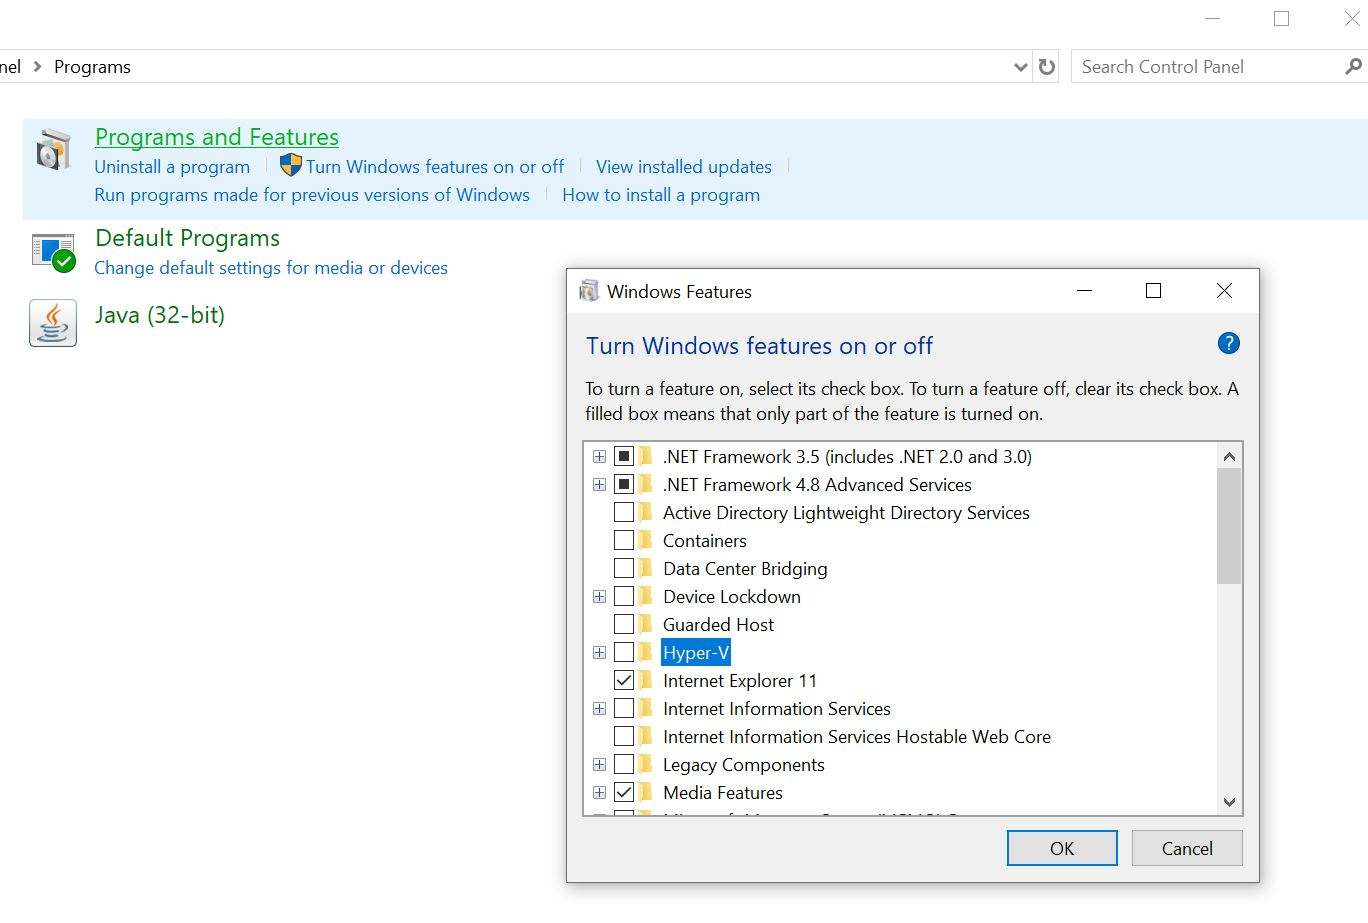 Enable Hyper-V from Programs and Features